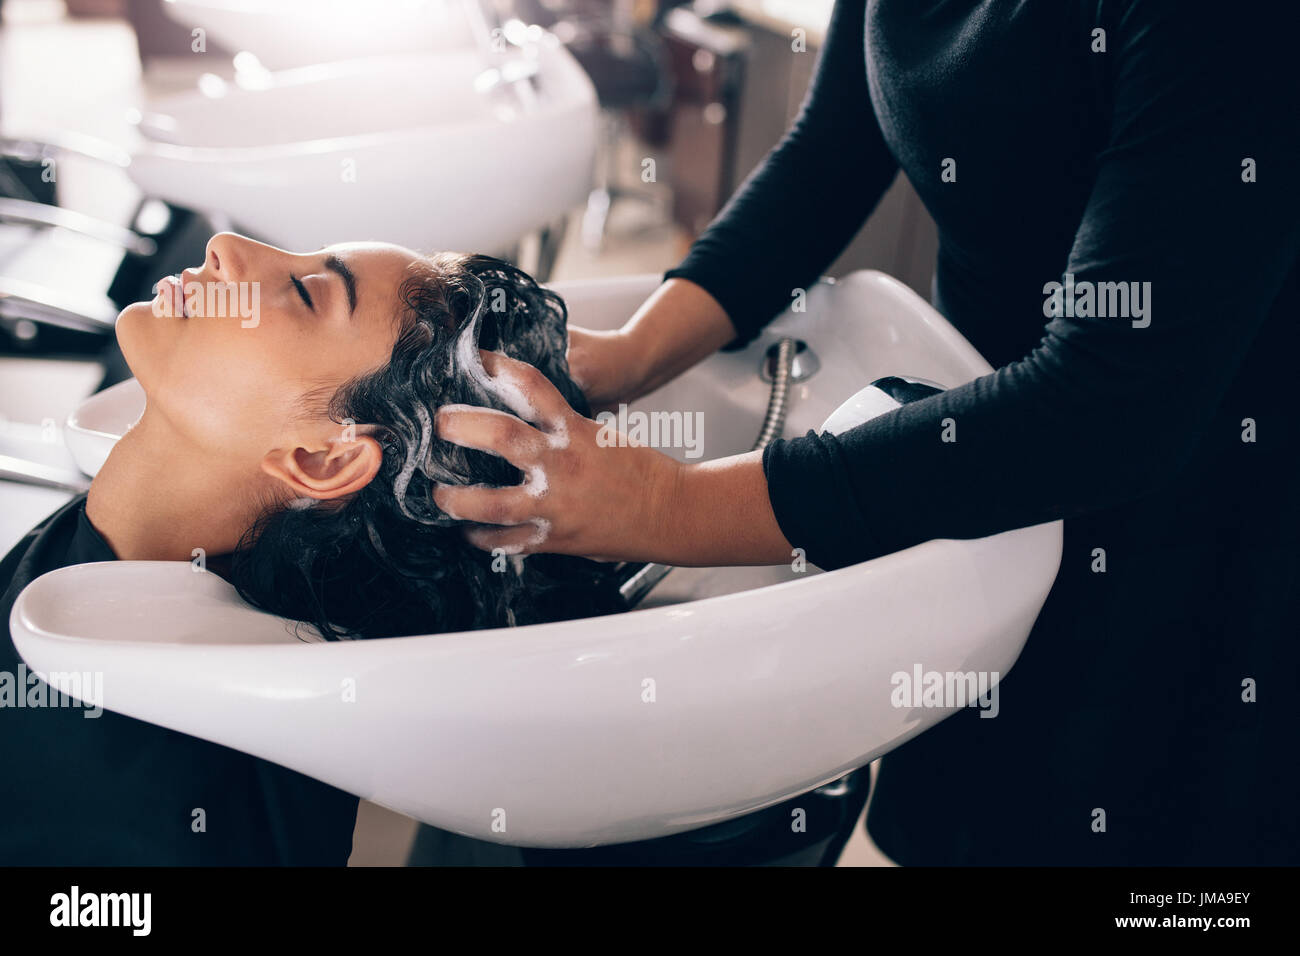 Woman applying shampoo and massaging hair of a customer. Woman having her hair washed in a hairdressing salon. - Stock Image